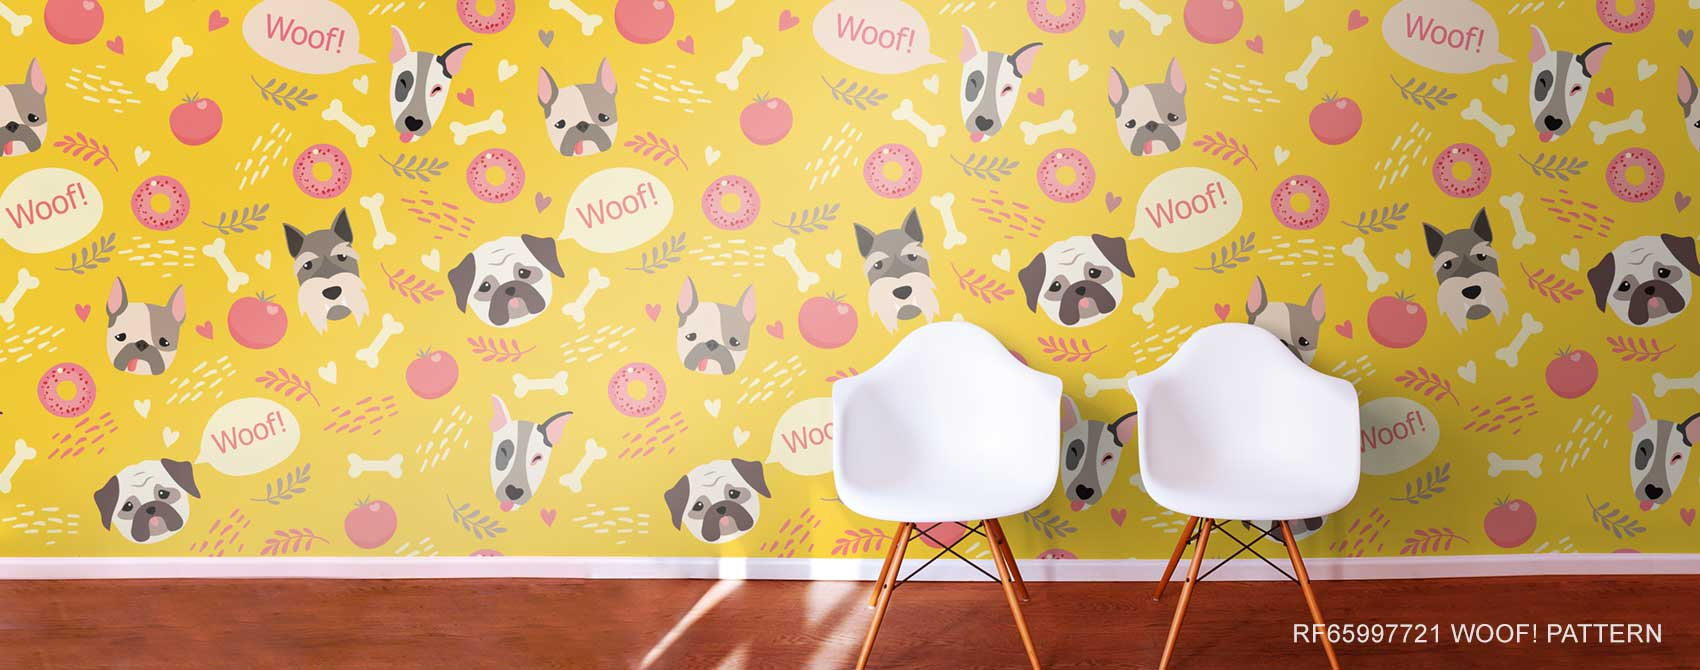 woof pattern wallpaper